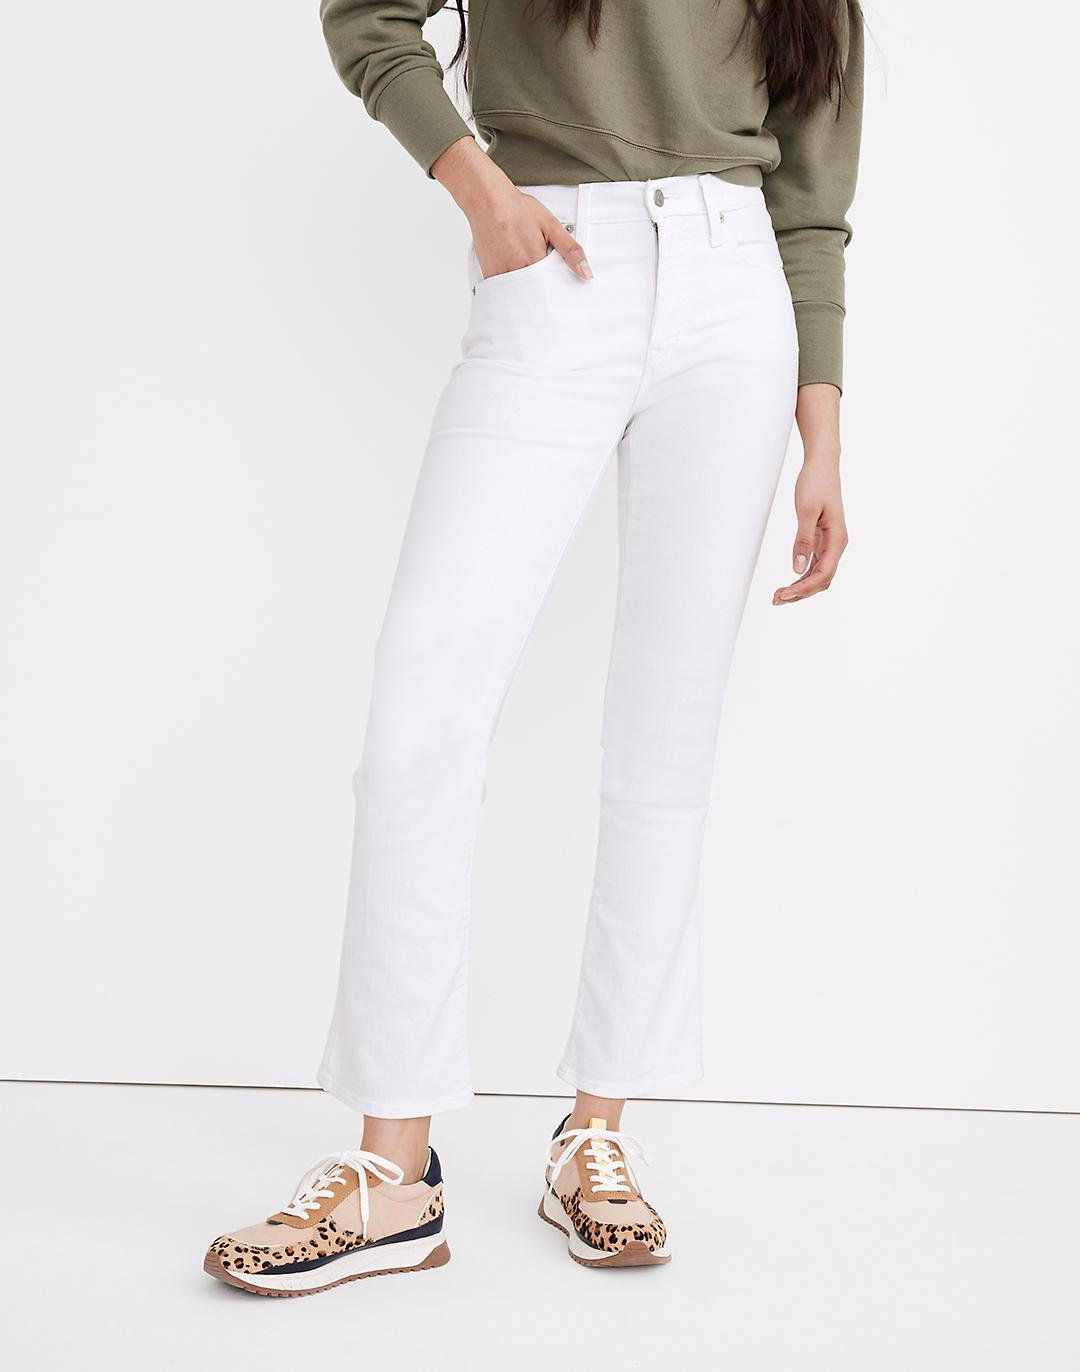 Tall Cali Demi-Boot Jeans in Pure White 3